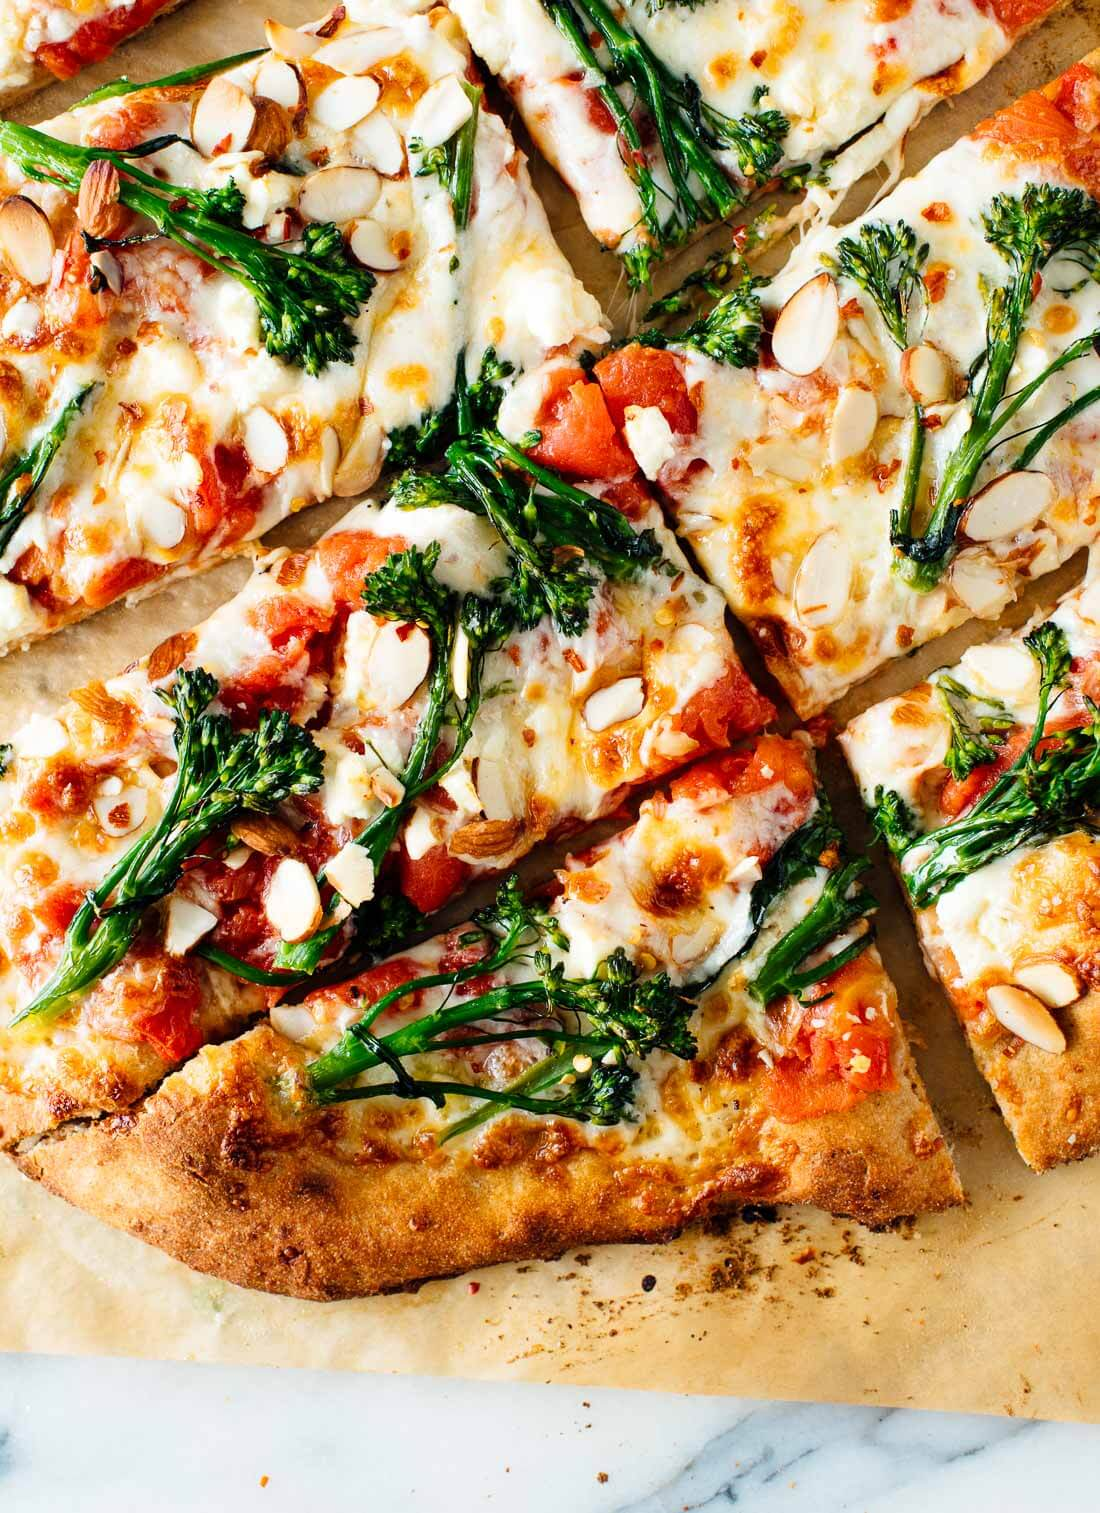 Pizza Broccolini de almendras